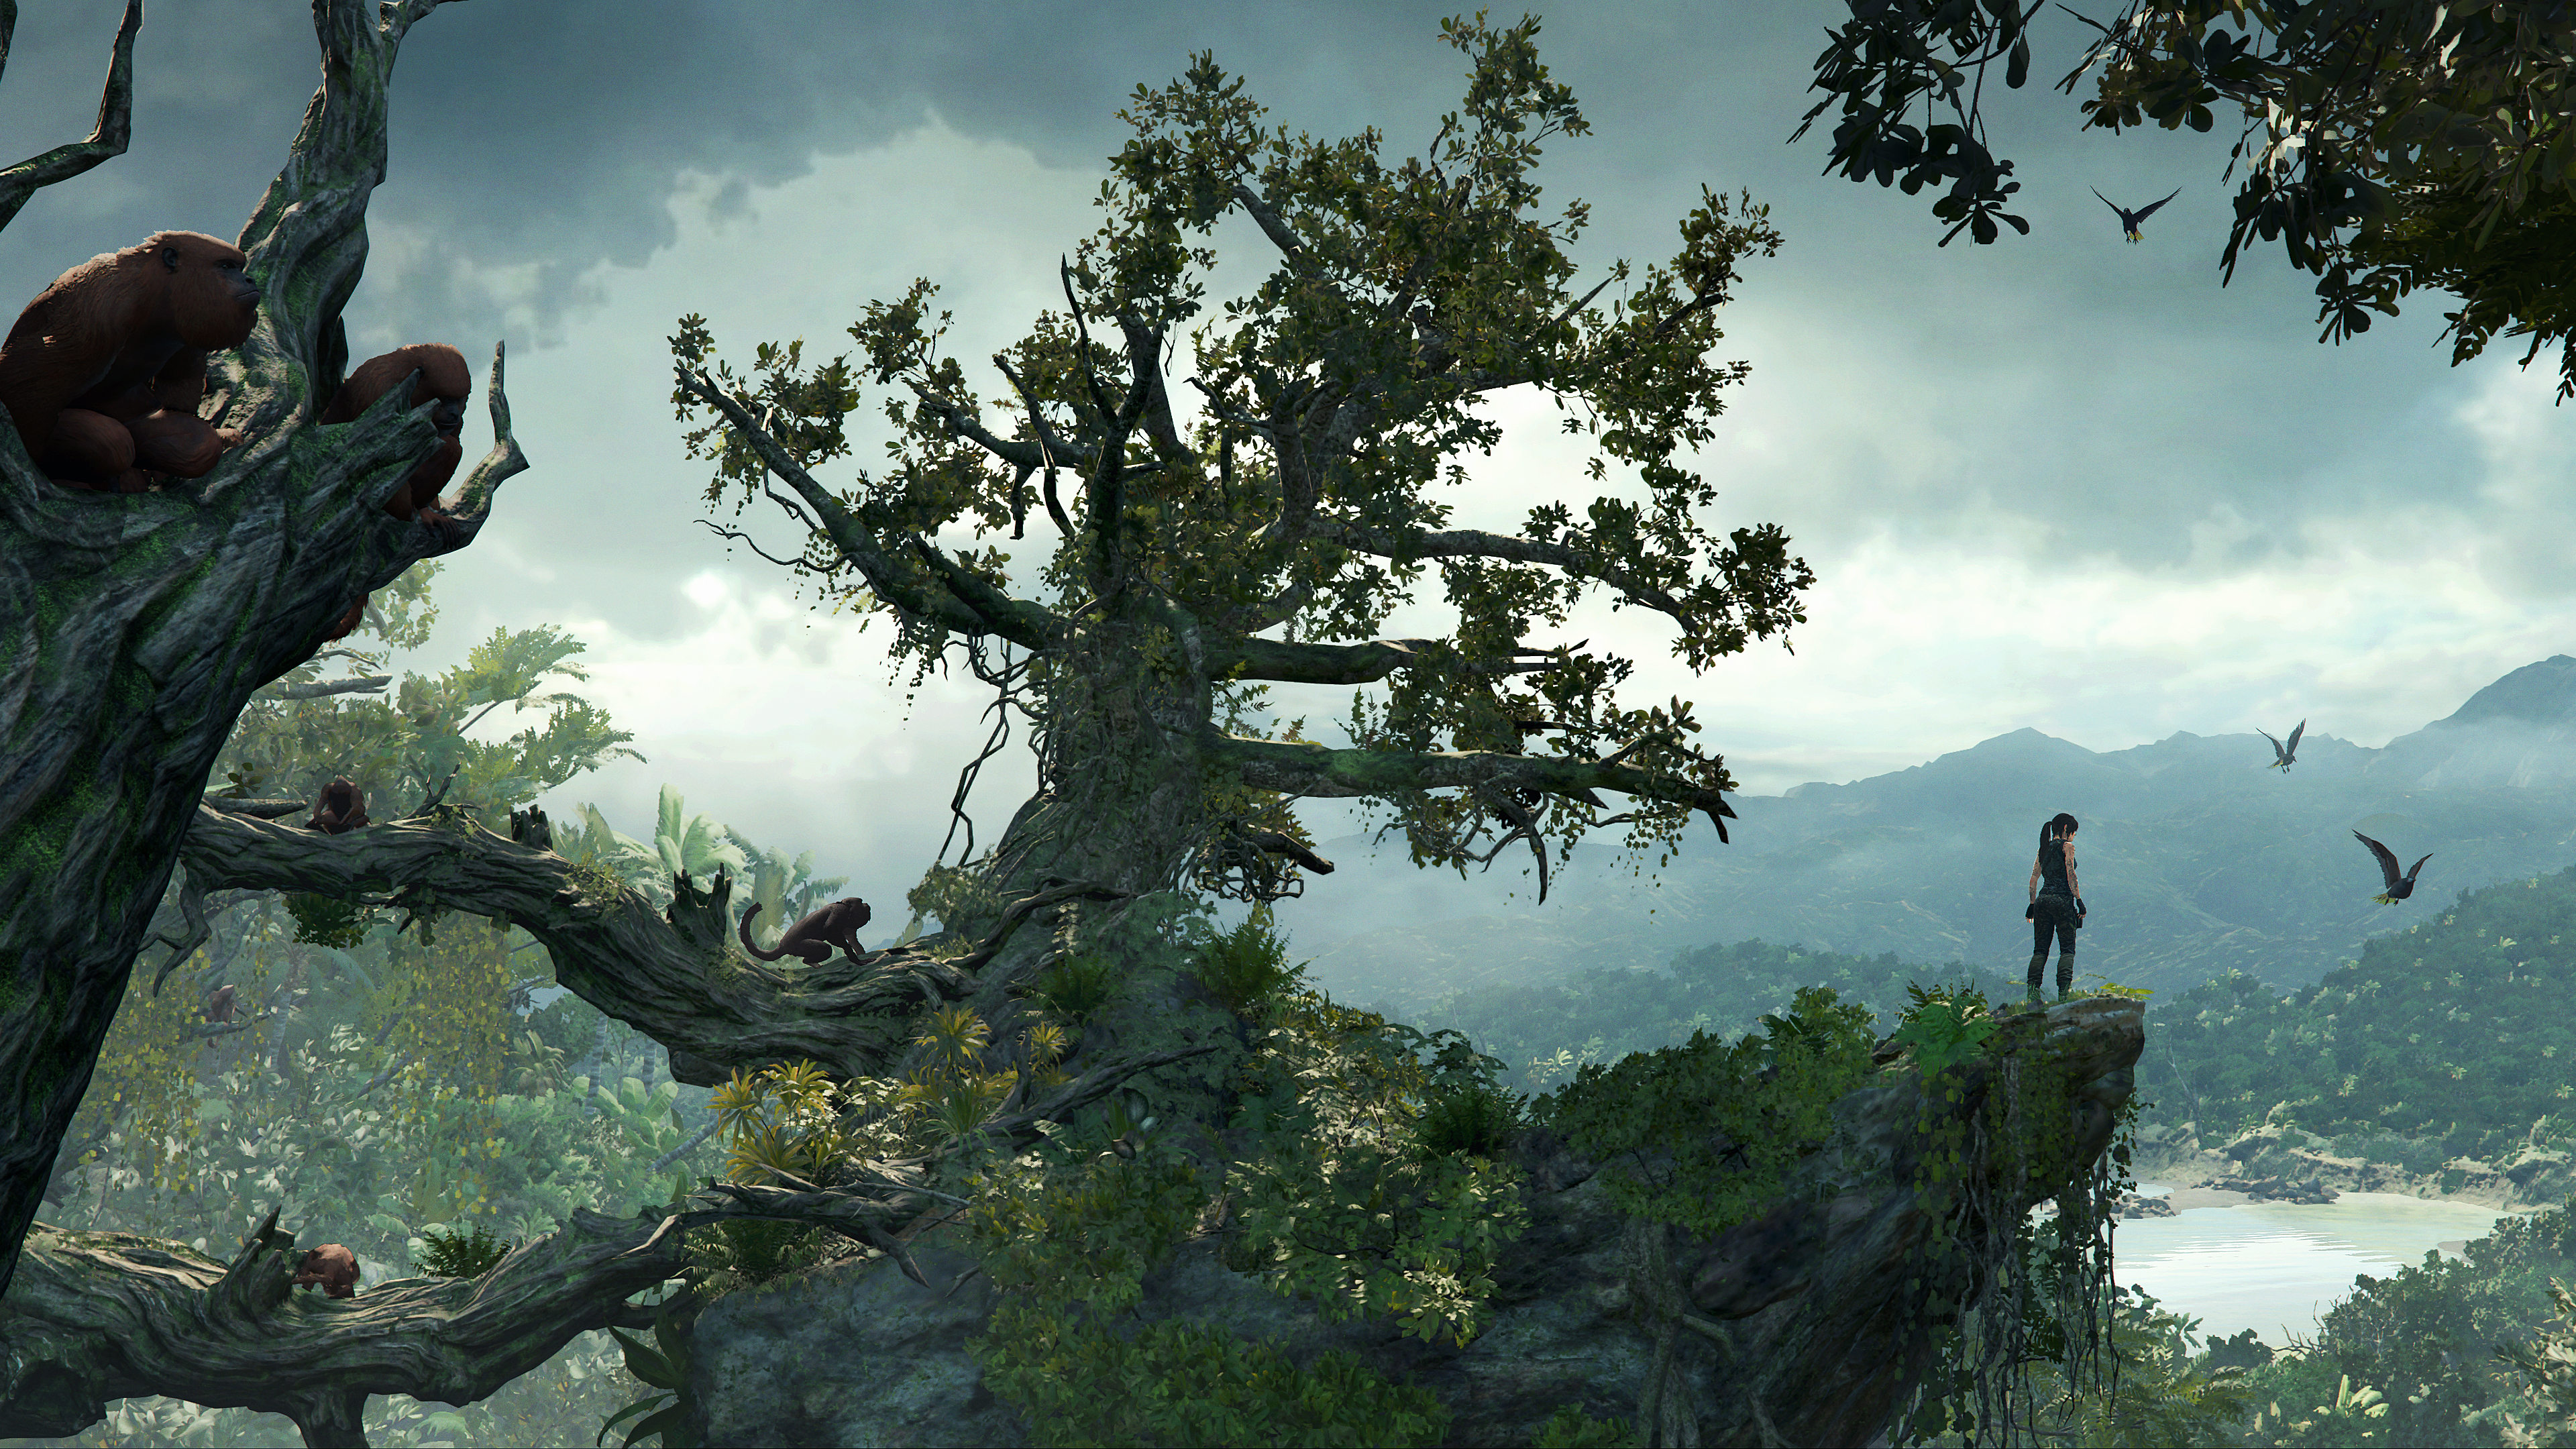 Tomb Raider Eleven Shadow Of The Tomb Raider 2018 Picture